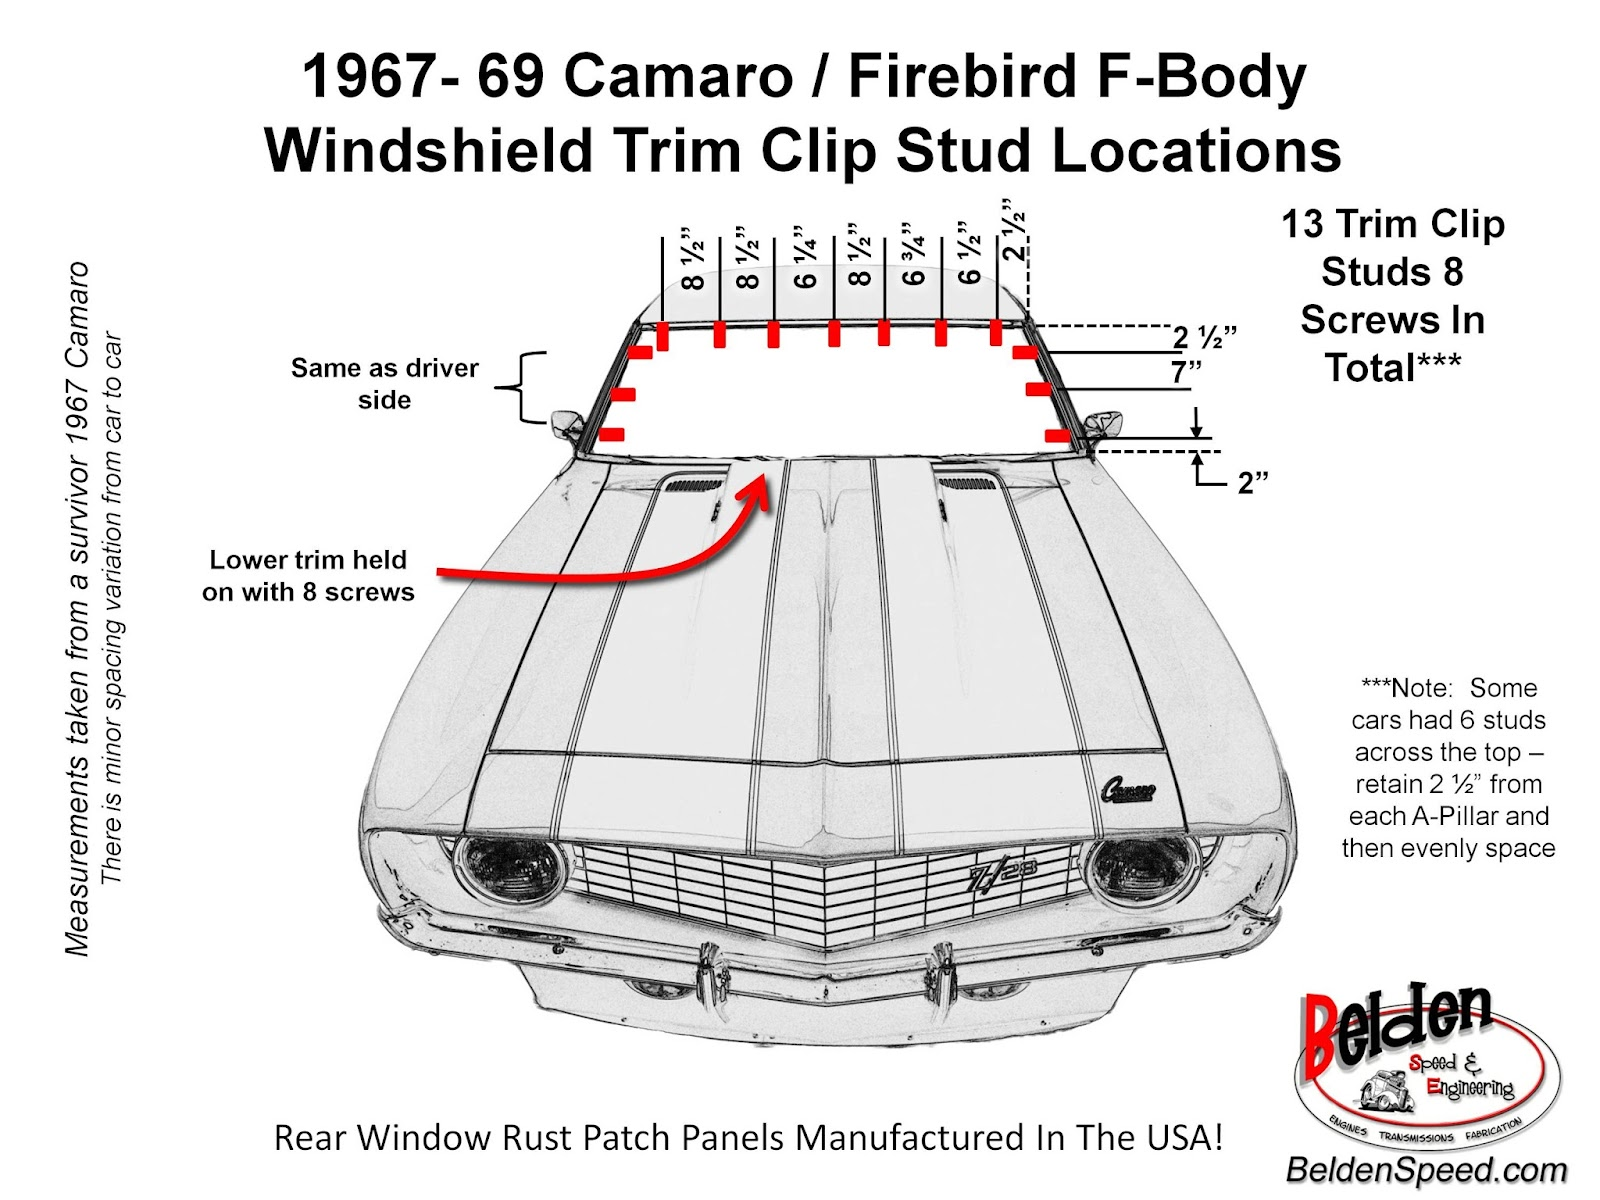 1967 Camaro Body Panel Diagram Basic Wiring Schematic Fuse Box Parts 1969 Firebird F Windshield Trim Clip Stud Locations Rs Tail Light